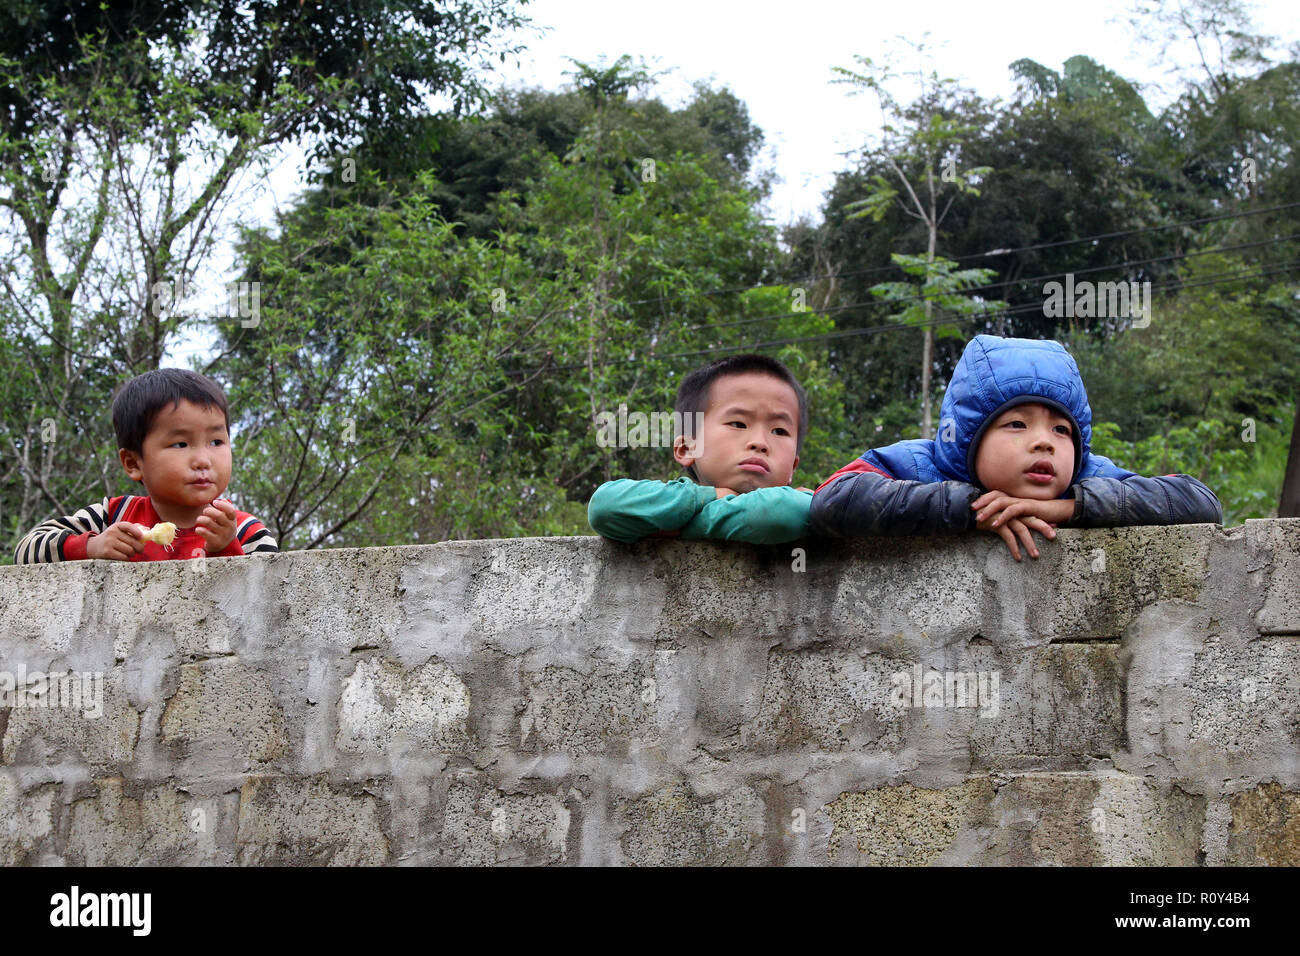 Three young boys peer over a concrete block wall, Ban Pho village, Vietnam - Stock Image